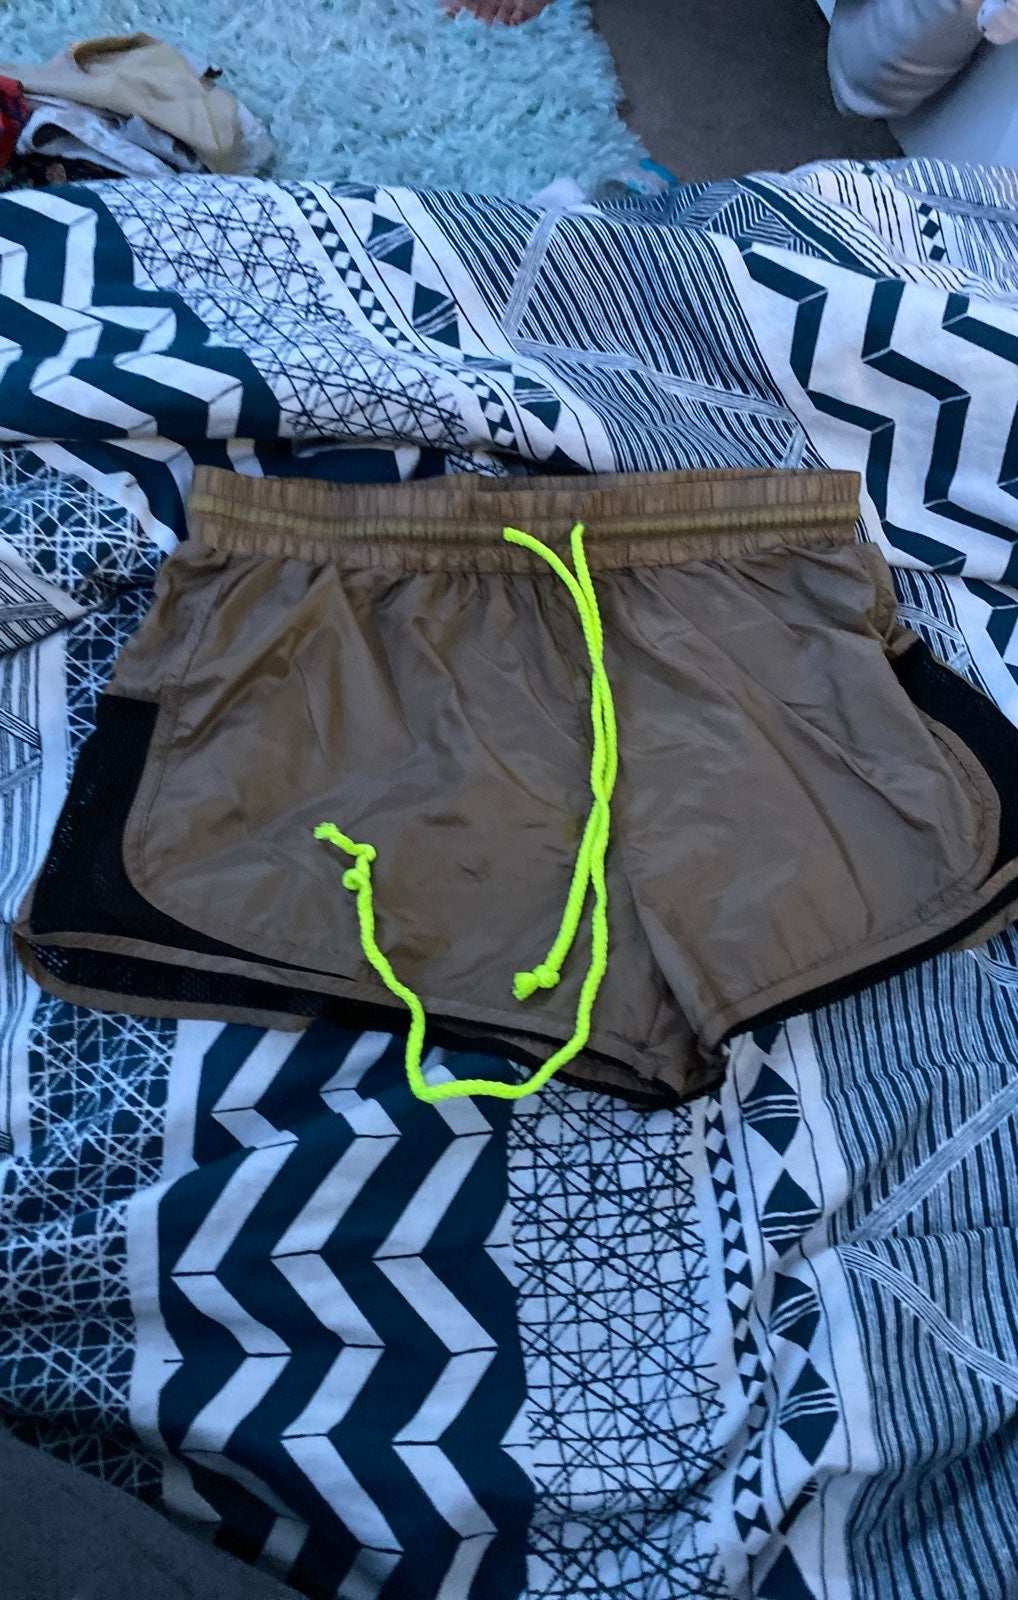 Cover up shorts